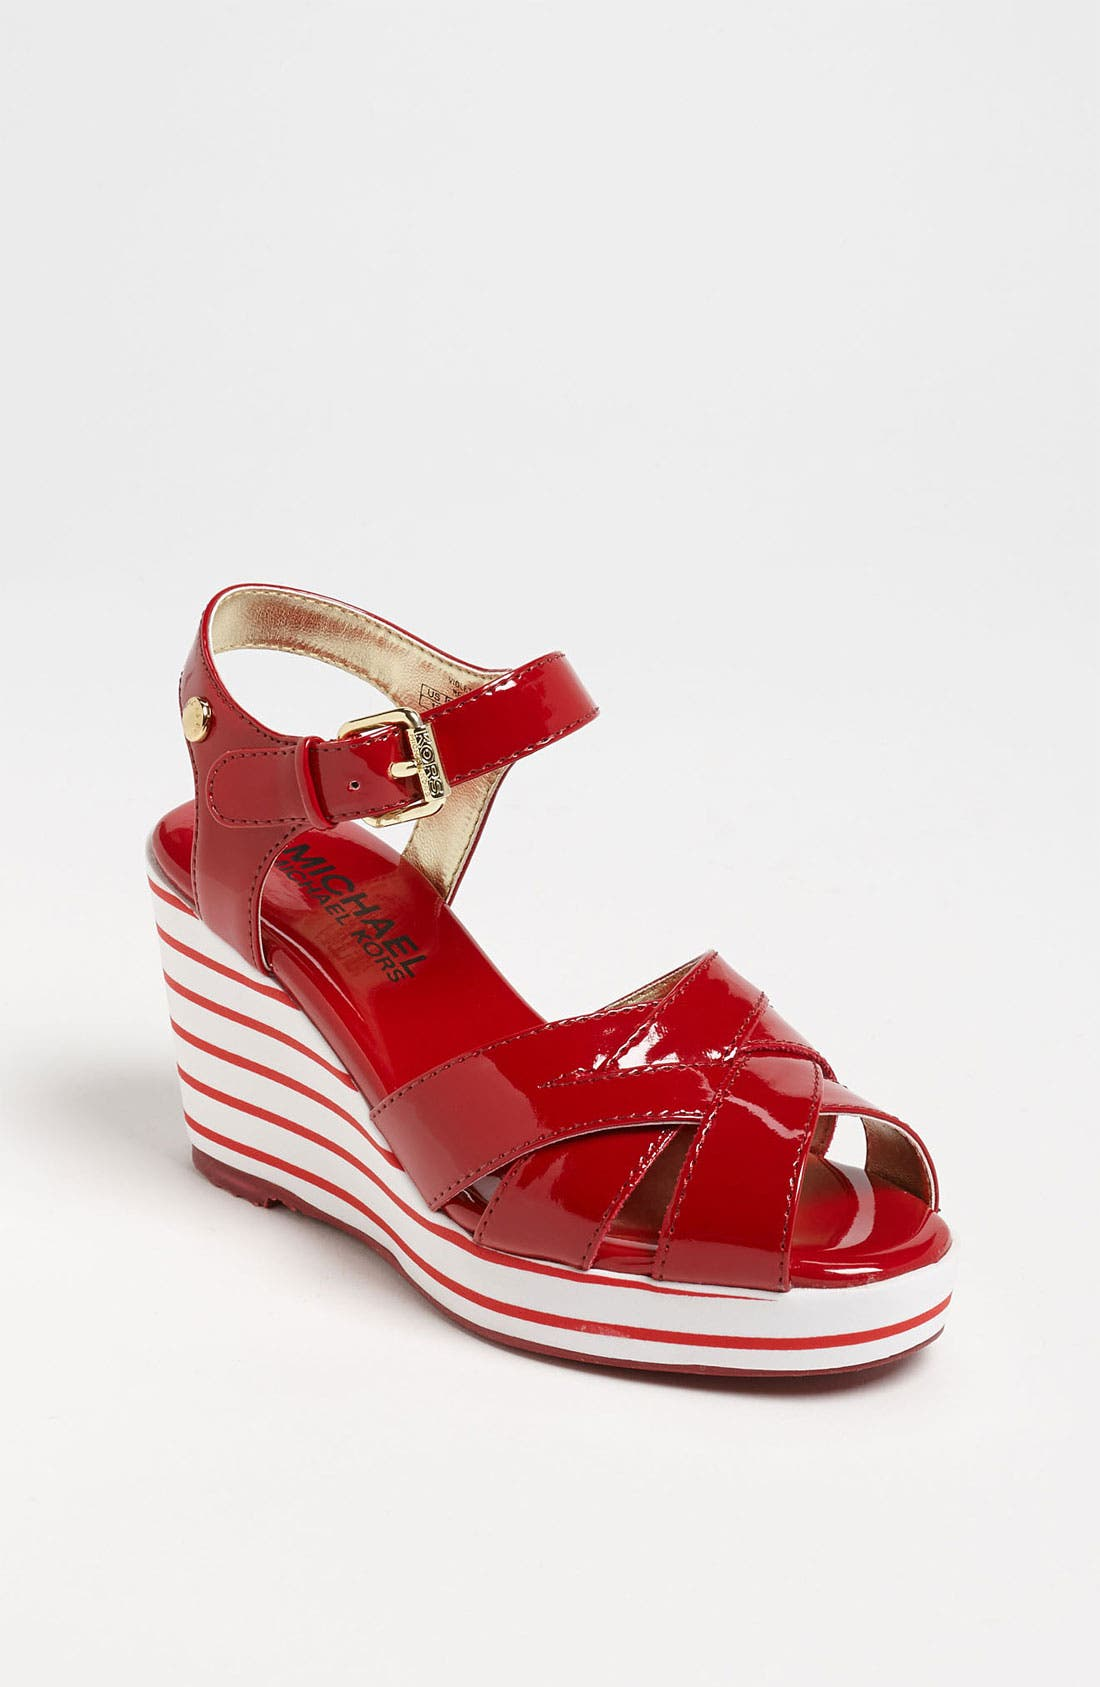 Alternate Image 1 Selected - MICHAEL Michael Kors 'Violet' Sandal (Little Kid & Big Kid)